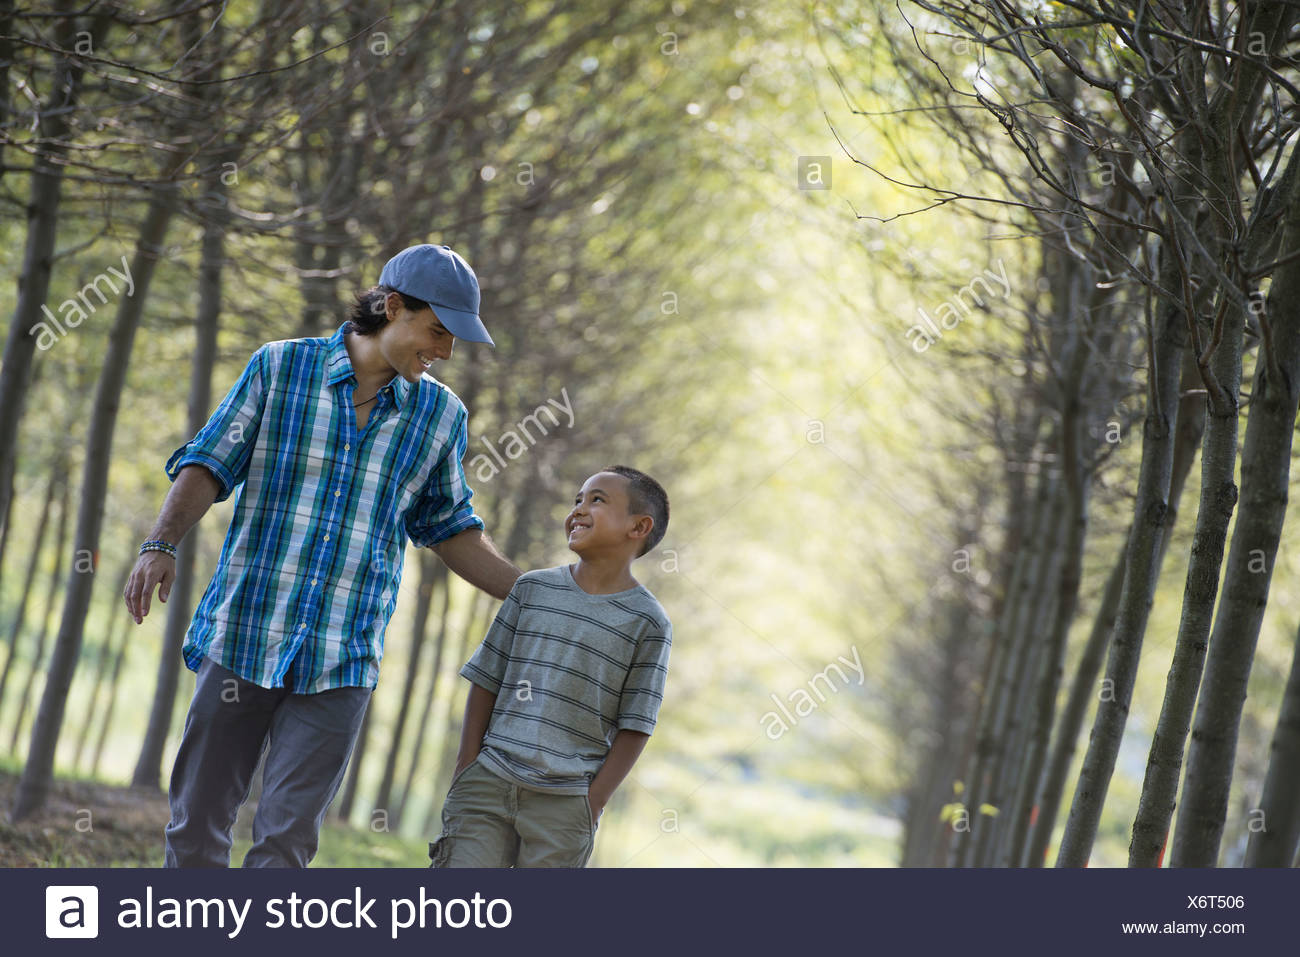 A man and a young boy walking down an avenue of trees. Stock Photo